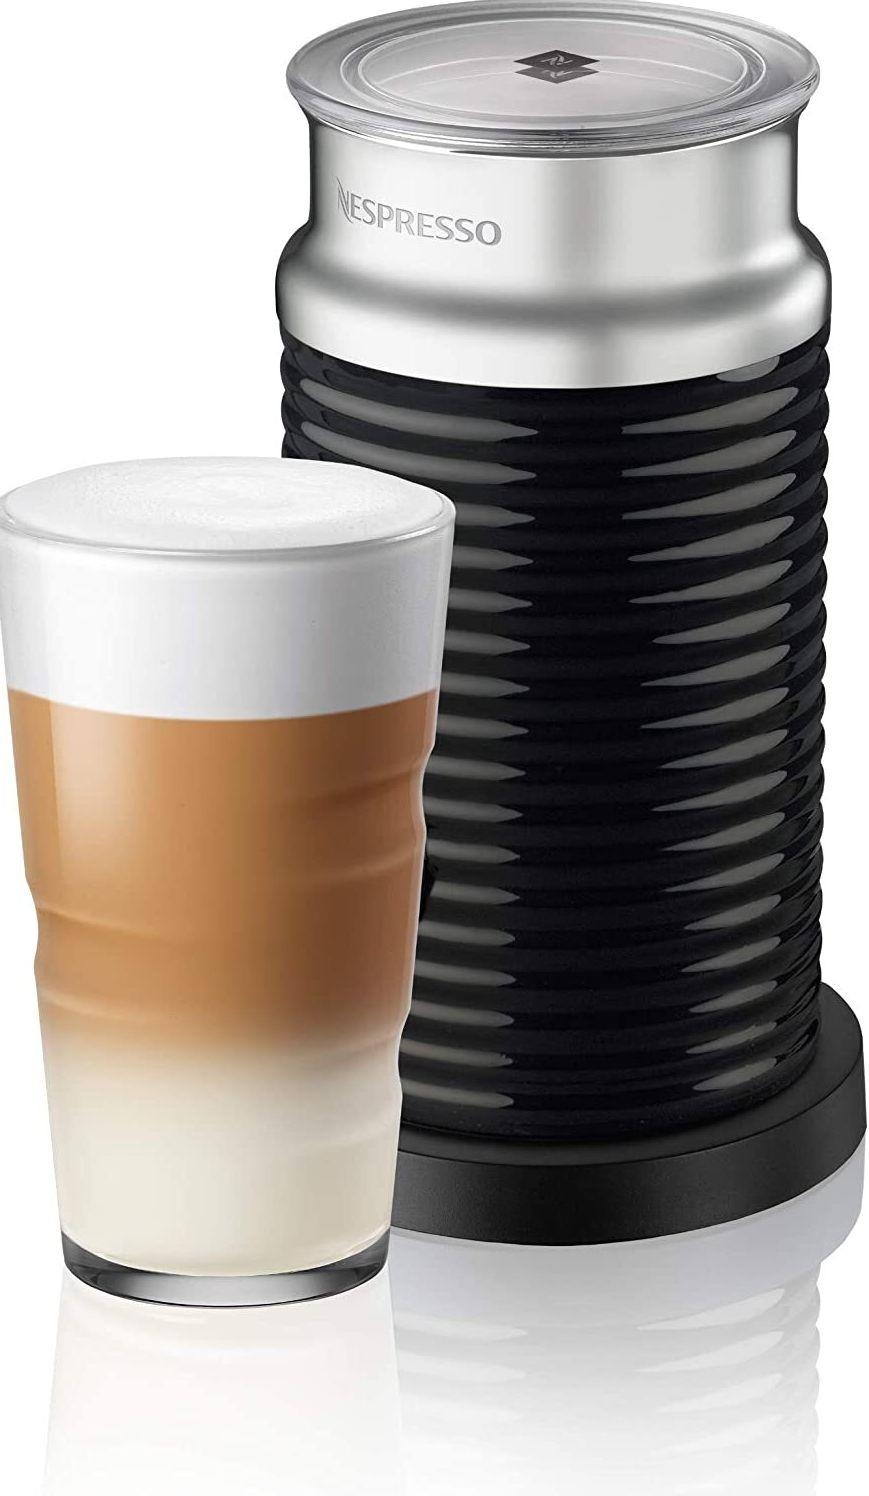 """For those whoprefer to sip on something a bit decadent after rolling out of bed.<br /><br /><strong>Promising review:</strong>""""Bravo Nespresso! I can't rave enough about this item. The simplest and best milk frother I have aver seen.<strong>Our lattes and cappuccinos are simply fantastic now with the heated, frothed milk from this machine.</strong>I have an expensive Jura coffee maker and it does hot, frothed milk well but not as easy to use or as well frothed as this thing. I can make only the amount of milk I need with this, where I would have a big bulky stainless-steel canister on the counter all day for the Jura with milk I would never get to use so would throw away. Well worth the price if you like perfectly frothed milk. Simple to use too! One of the best items I have ever purchased!"""" —<a href=""""https://www.amazon.com/dp/B06XHWQJKN?tag=huffpost-bfsyndication-20&ascsubtag=5817703%2C34%2C43%2Cd%2C0%2C0%2C0%2C962%3A1%3B901%3A2%3B900%3A2%3B974%3A3%3B975%3A2%3B982%3A2%2C16176011%2C0"""" target=""""_blank"""" rel=""""noopener noreferrer"""">Customer</a><br /><br /><strong>Get it from Amazon for <a href=""""https://www.amazon.com/dp/B06XHWQJKN?tag=huffpost-bfsyndication-20&ascsubtag=5817703%2C34%2C43%2Cd%2C0%2C0%2C0%2C962%3A1%3B901%3A2%3B900%3A2%3B974%3A3%3B975%3A2%3B982%3A2%2C16176011%2C0"""" target=""""_blank"""" rel=""""noopener noreferrer"""">$86.99</a>.</strong><a href=""""https://img.buzzfeed.com/buzzfeed-static/static/2020-11/17/17/asset/a9a3f8cd3397/sub-buzz-11400-1605634710-8.jpg"""" data-skimlinks-tracking=""""5817703""""></a>"""